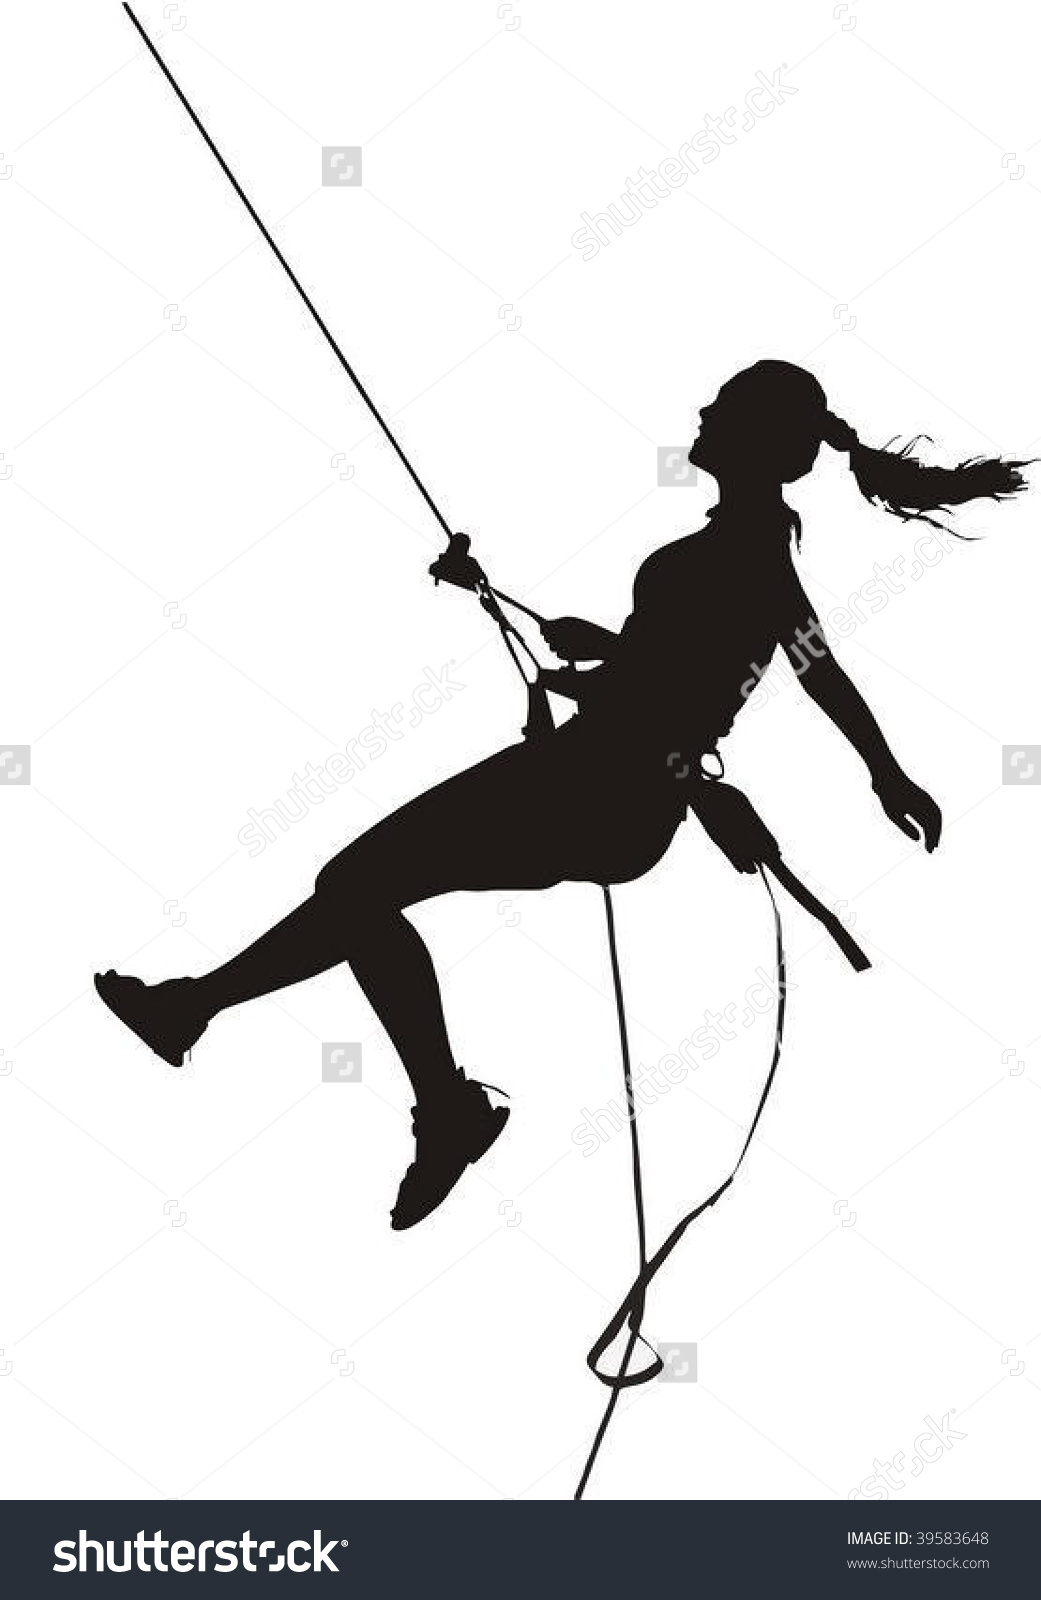 Rappelling clipart.